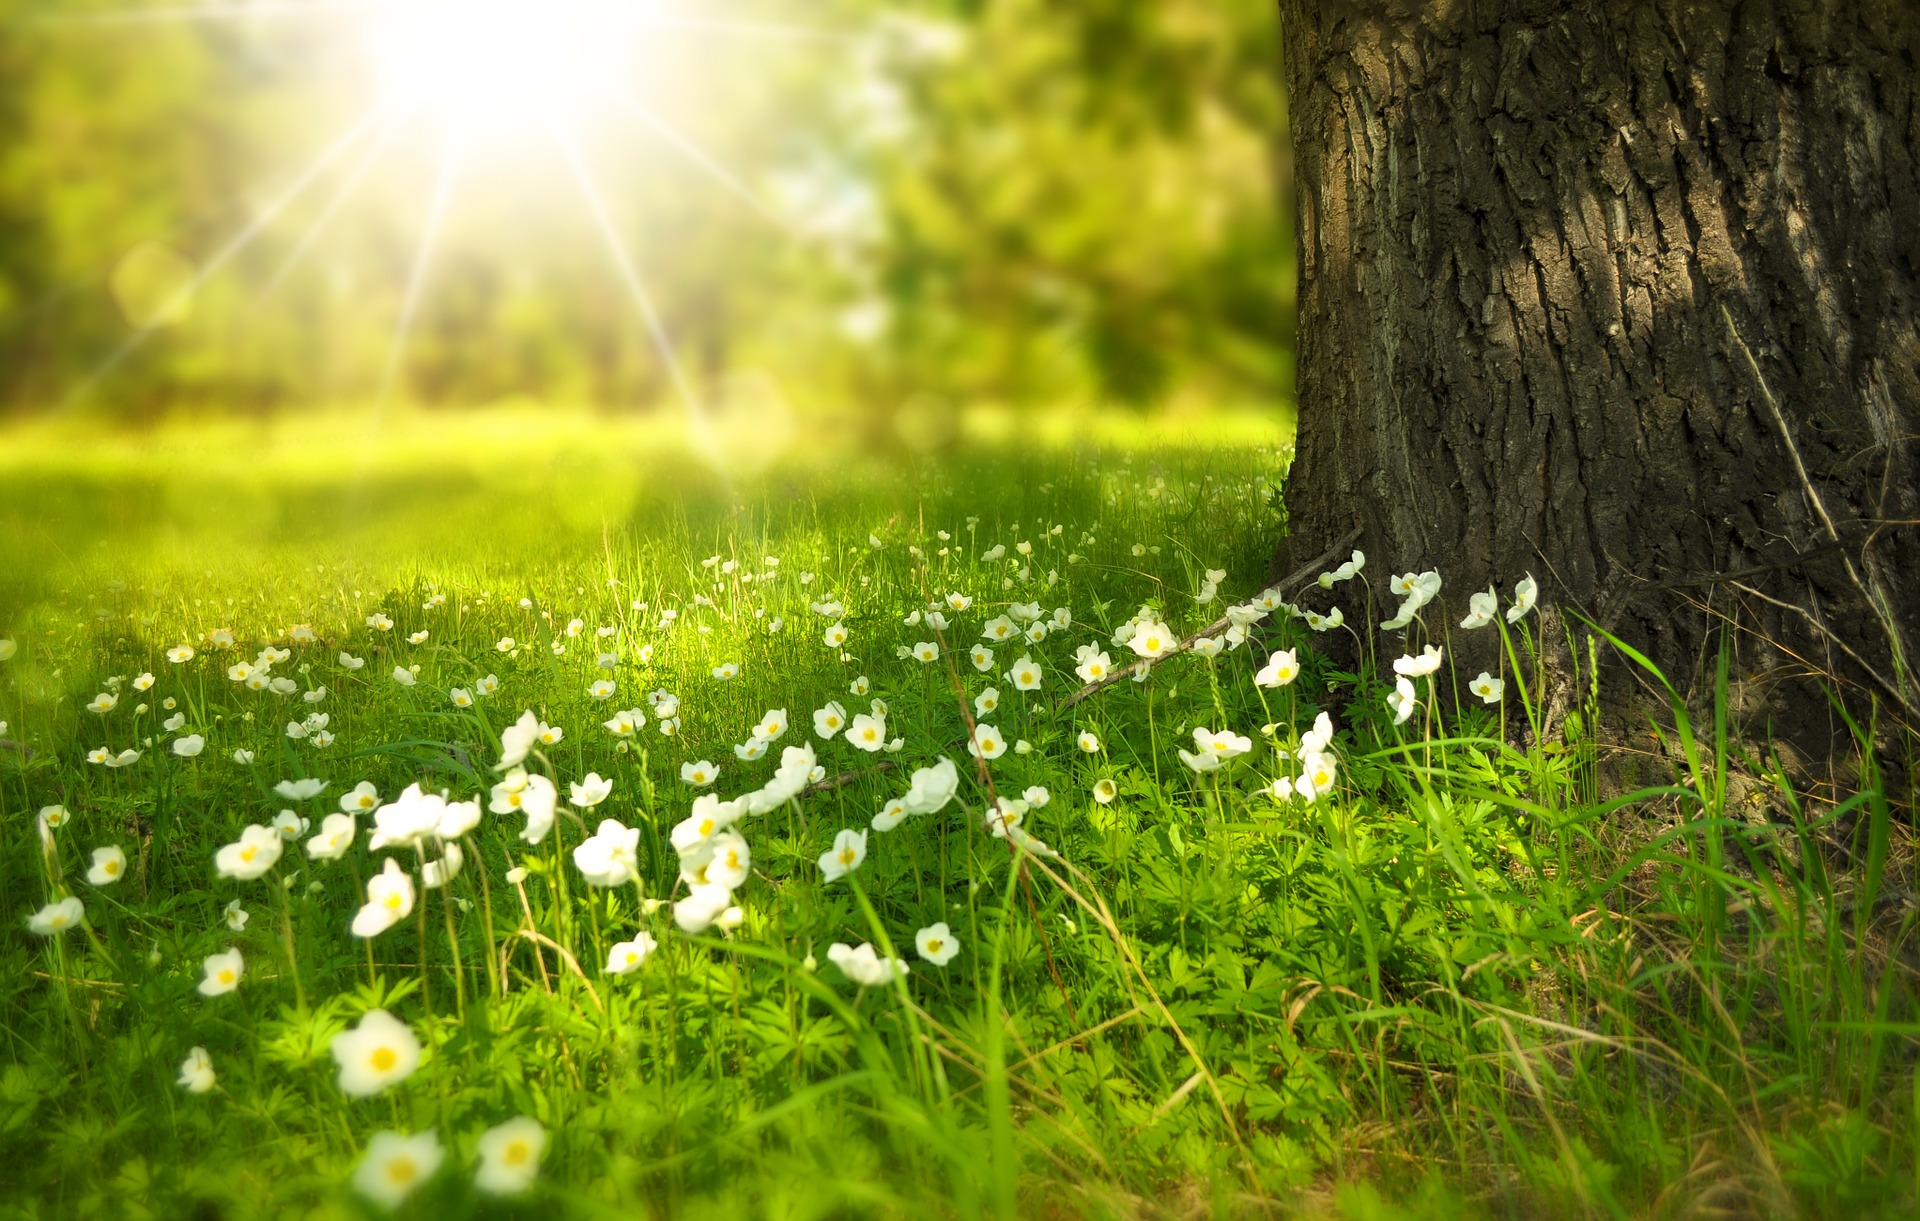 field with flowers and a tree to make the point about becoming more eco-friendly